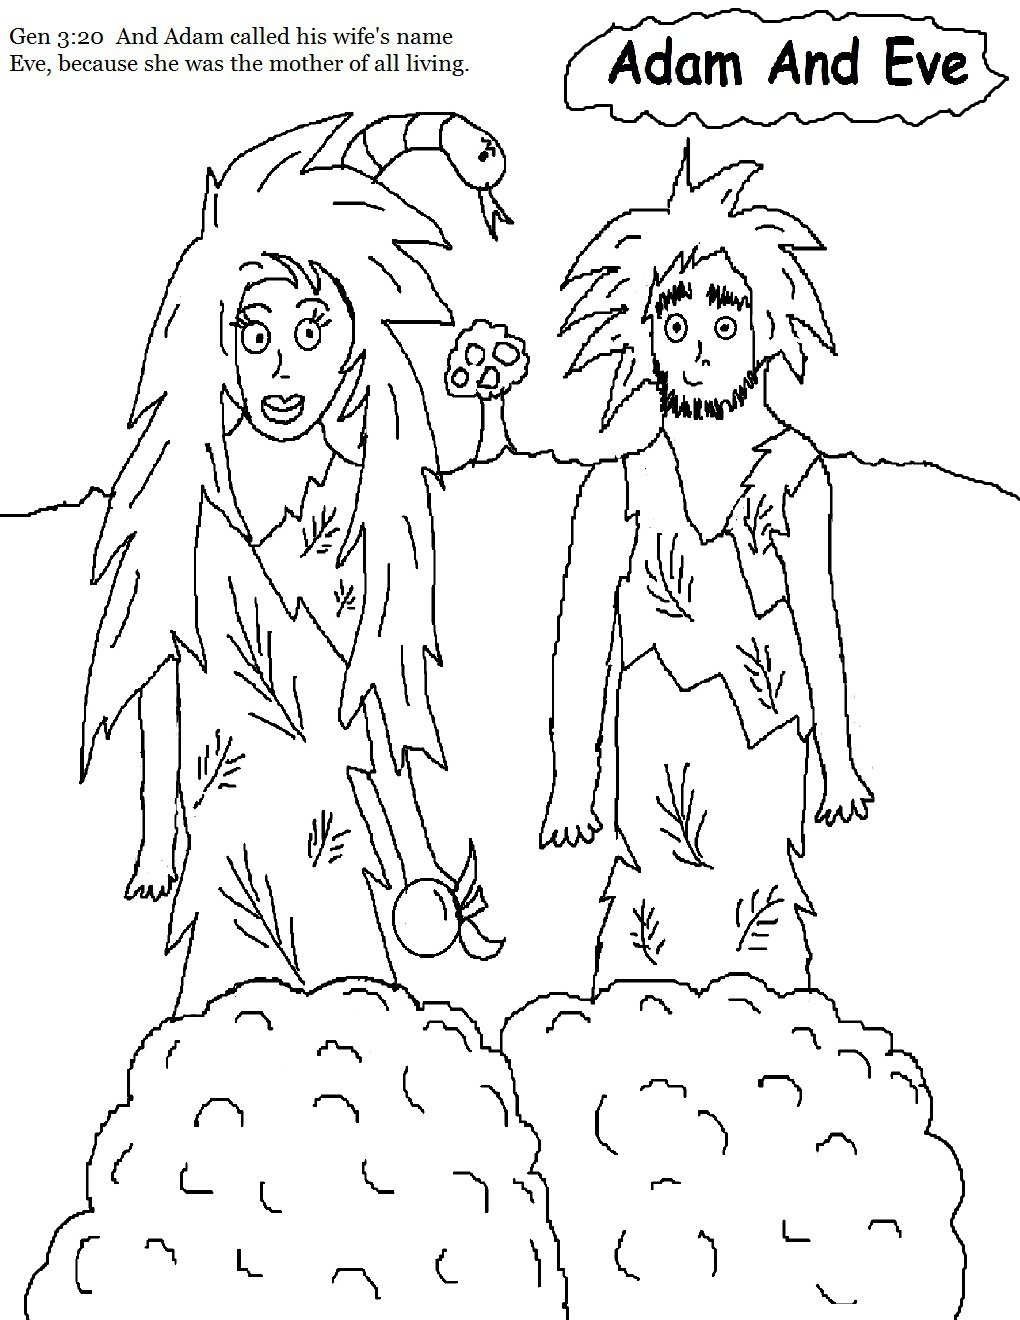 Adam And Eve Coloring Pages New And